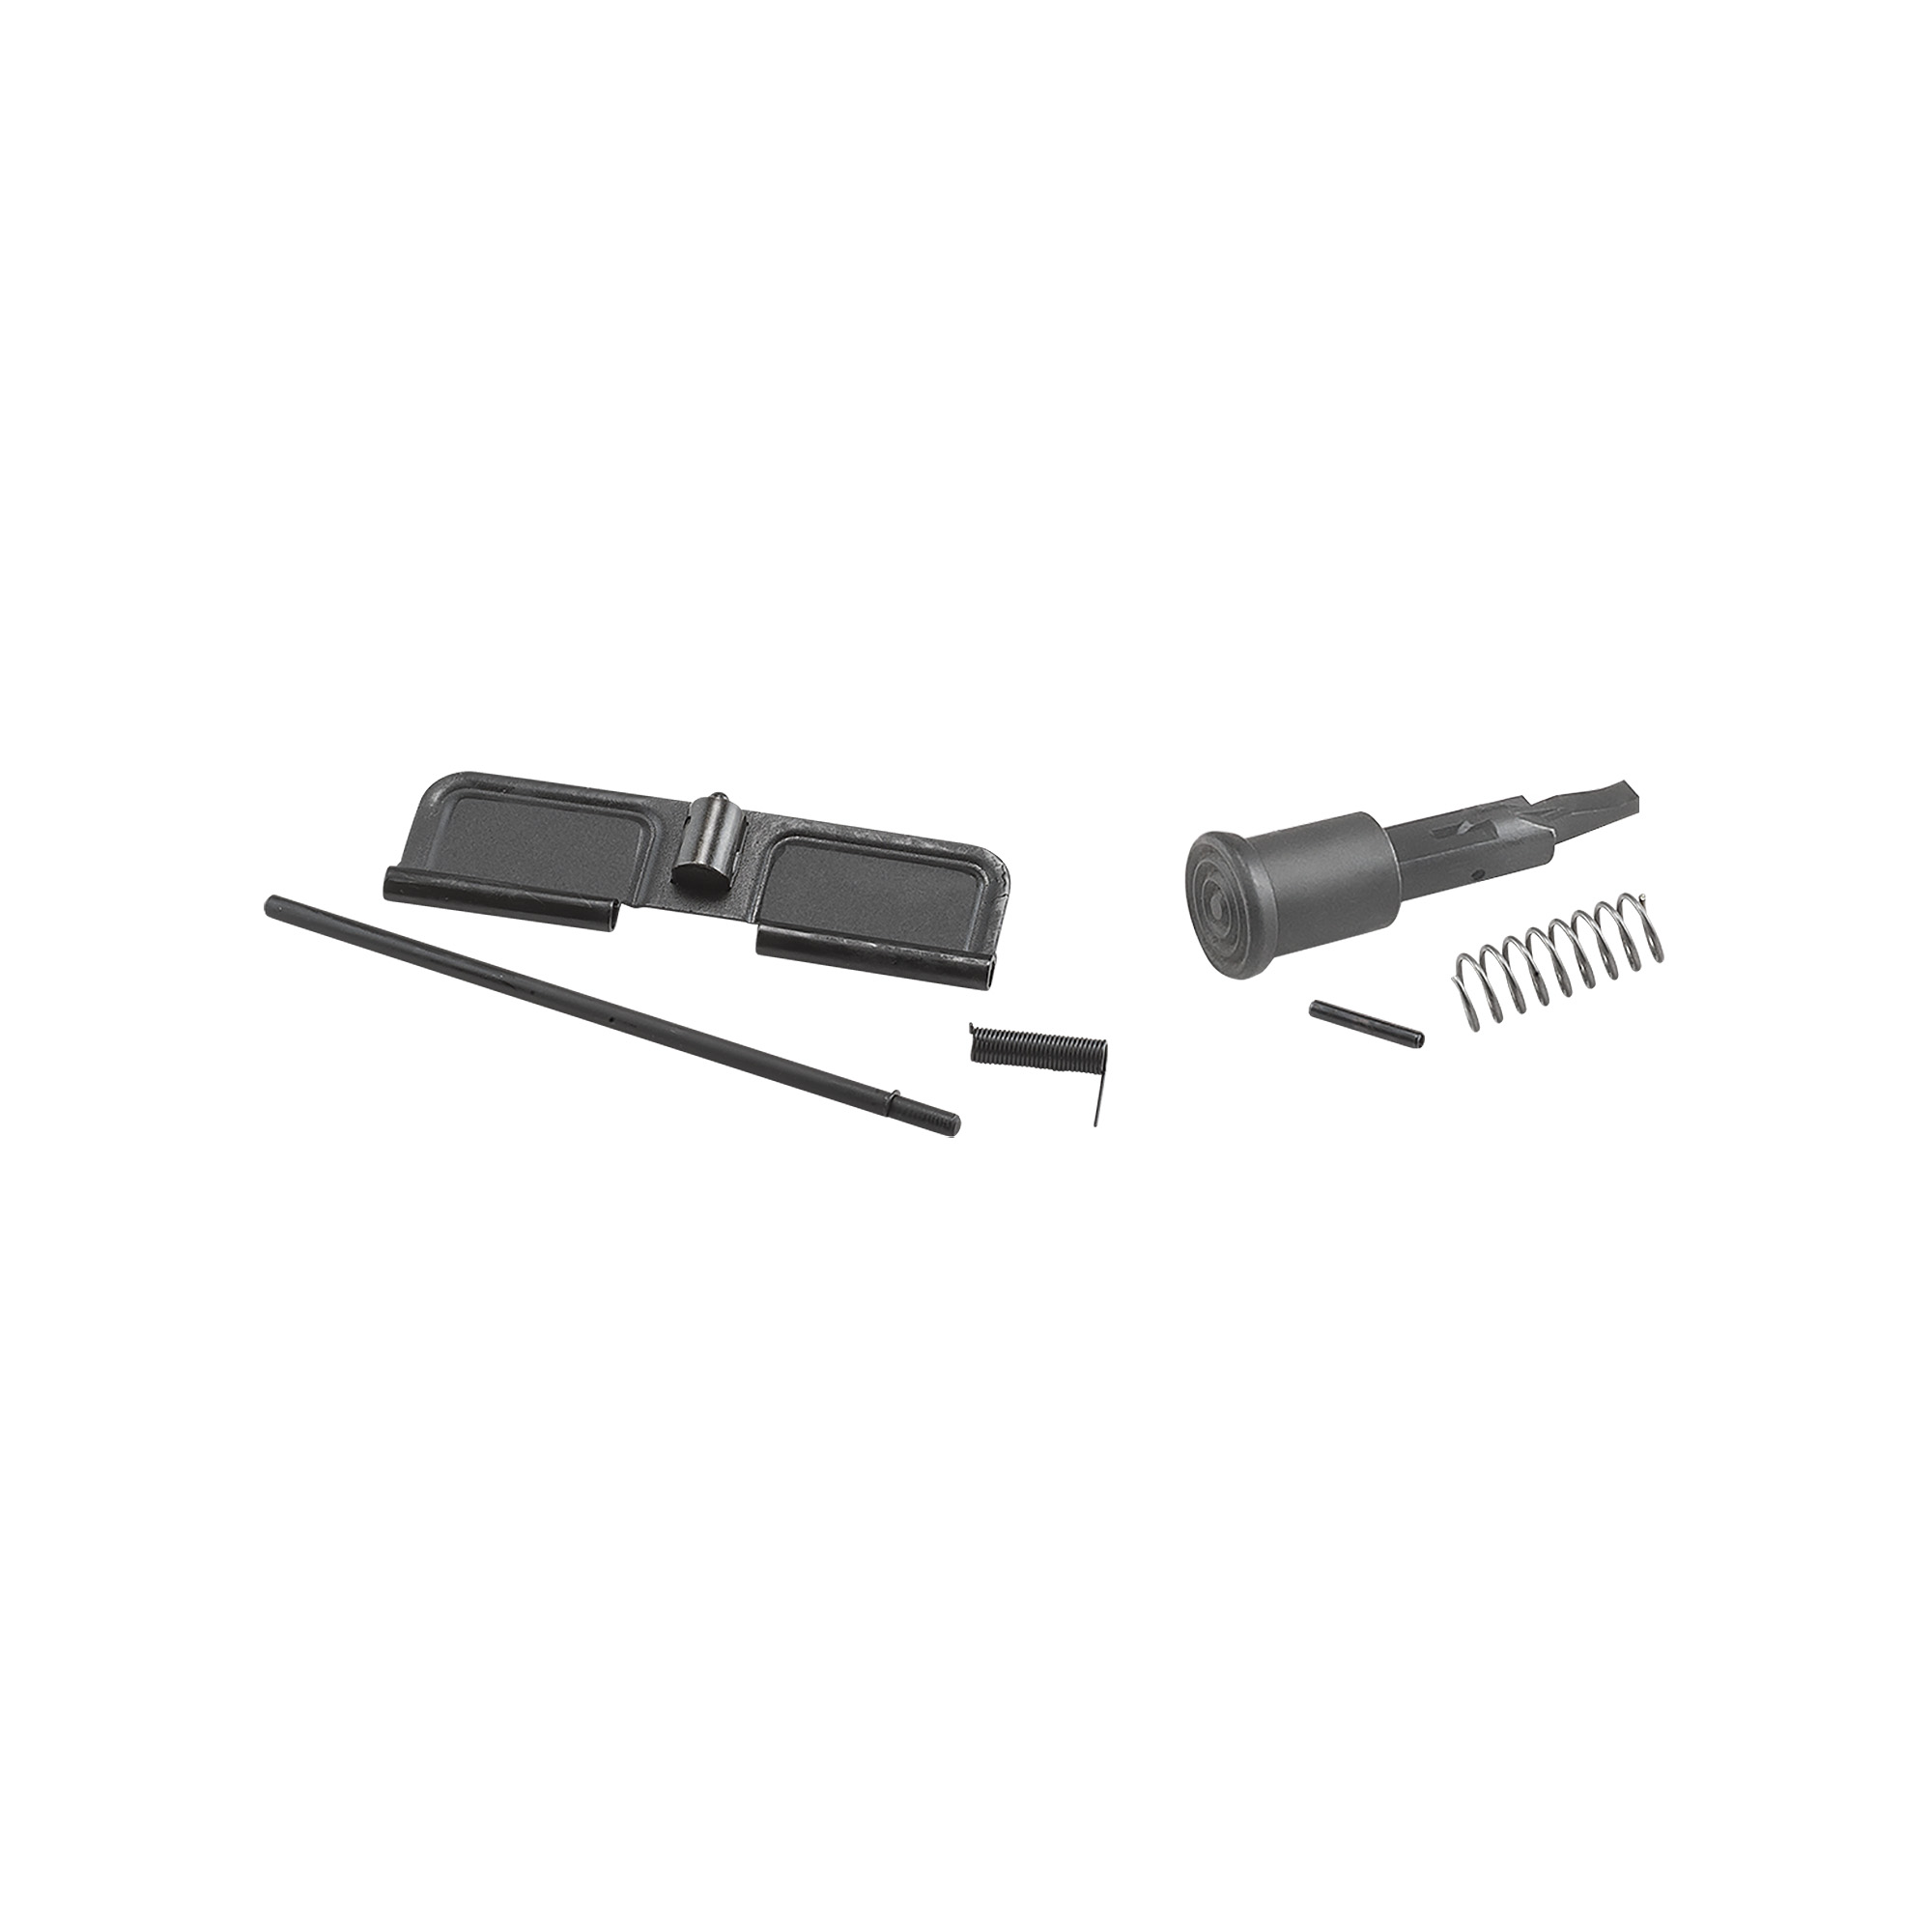 "The A3 Upper Receiver Parts Kit for AR-15 includes the ejection port cover"" ejection port rod"" ejection port C-clip"" ejection port spring"" forward assist button"" forward assist spring and forward assist pin."